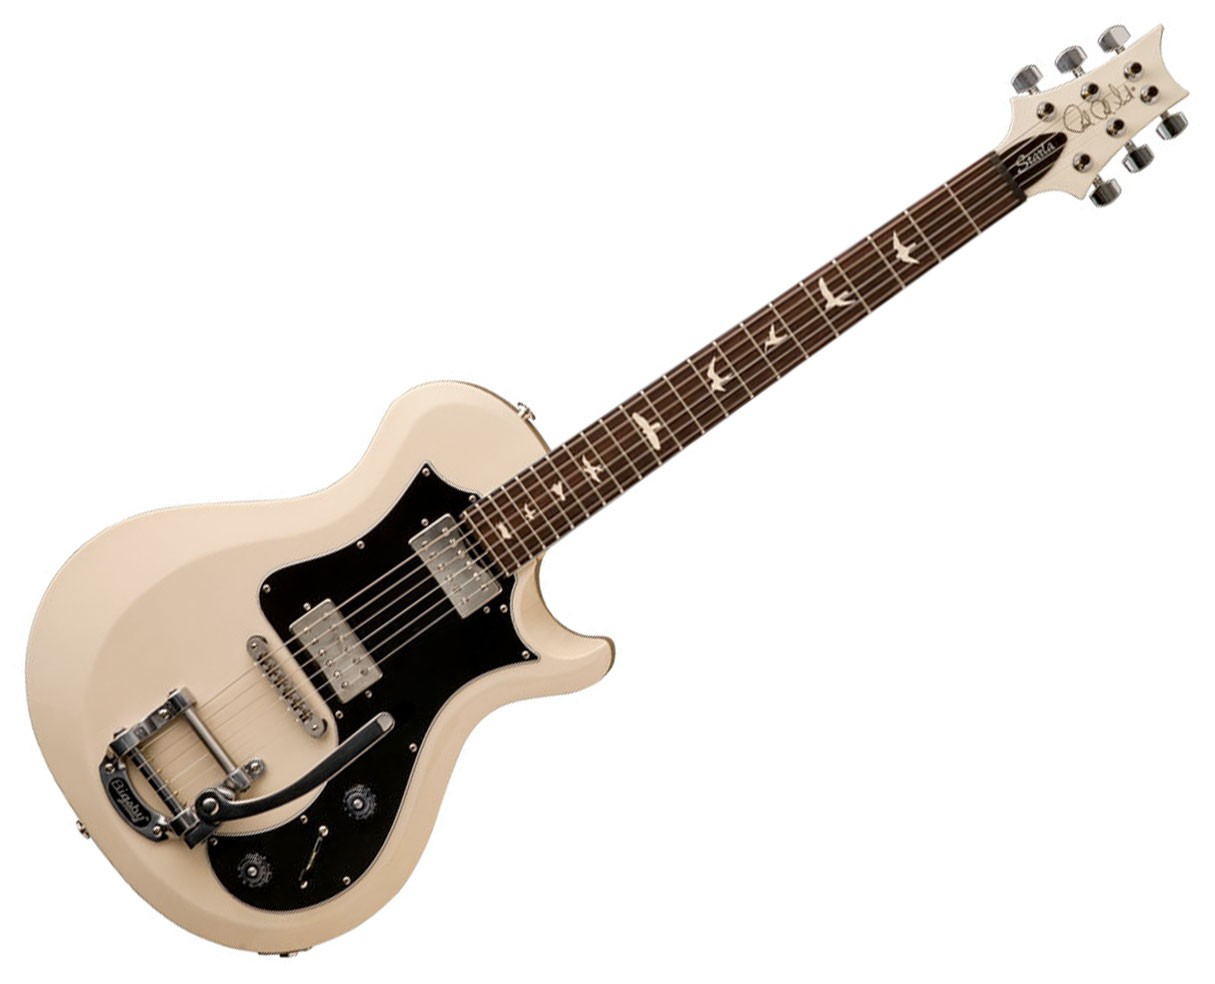 buy popular f3175 54b63 A few months ago, I had the pleasure of reviewing the PRS S2 Mira  Semi-hollow. I loved it so much, I bought one. When I was offered the  opportunity to try ...